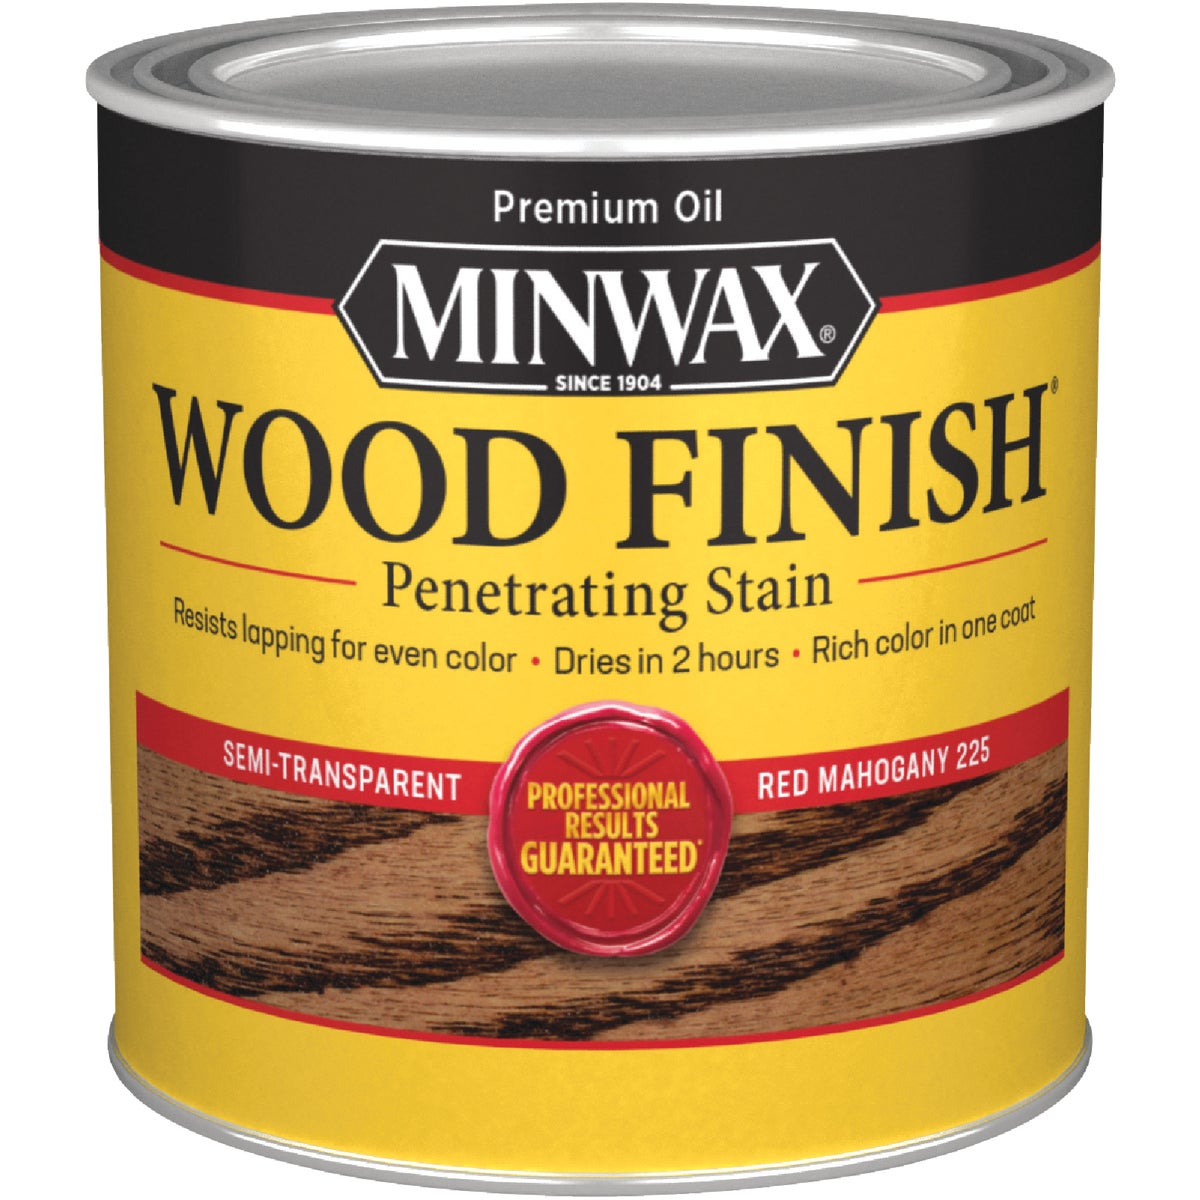 RED MAHOGANY WOOD STAIN - 222504444 by Minwax Company